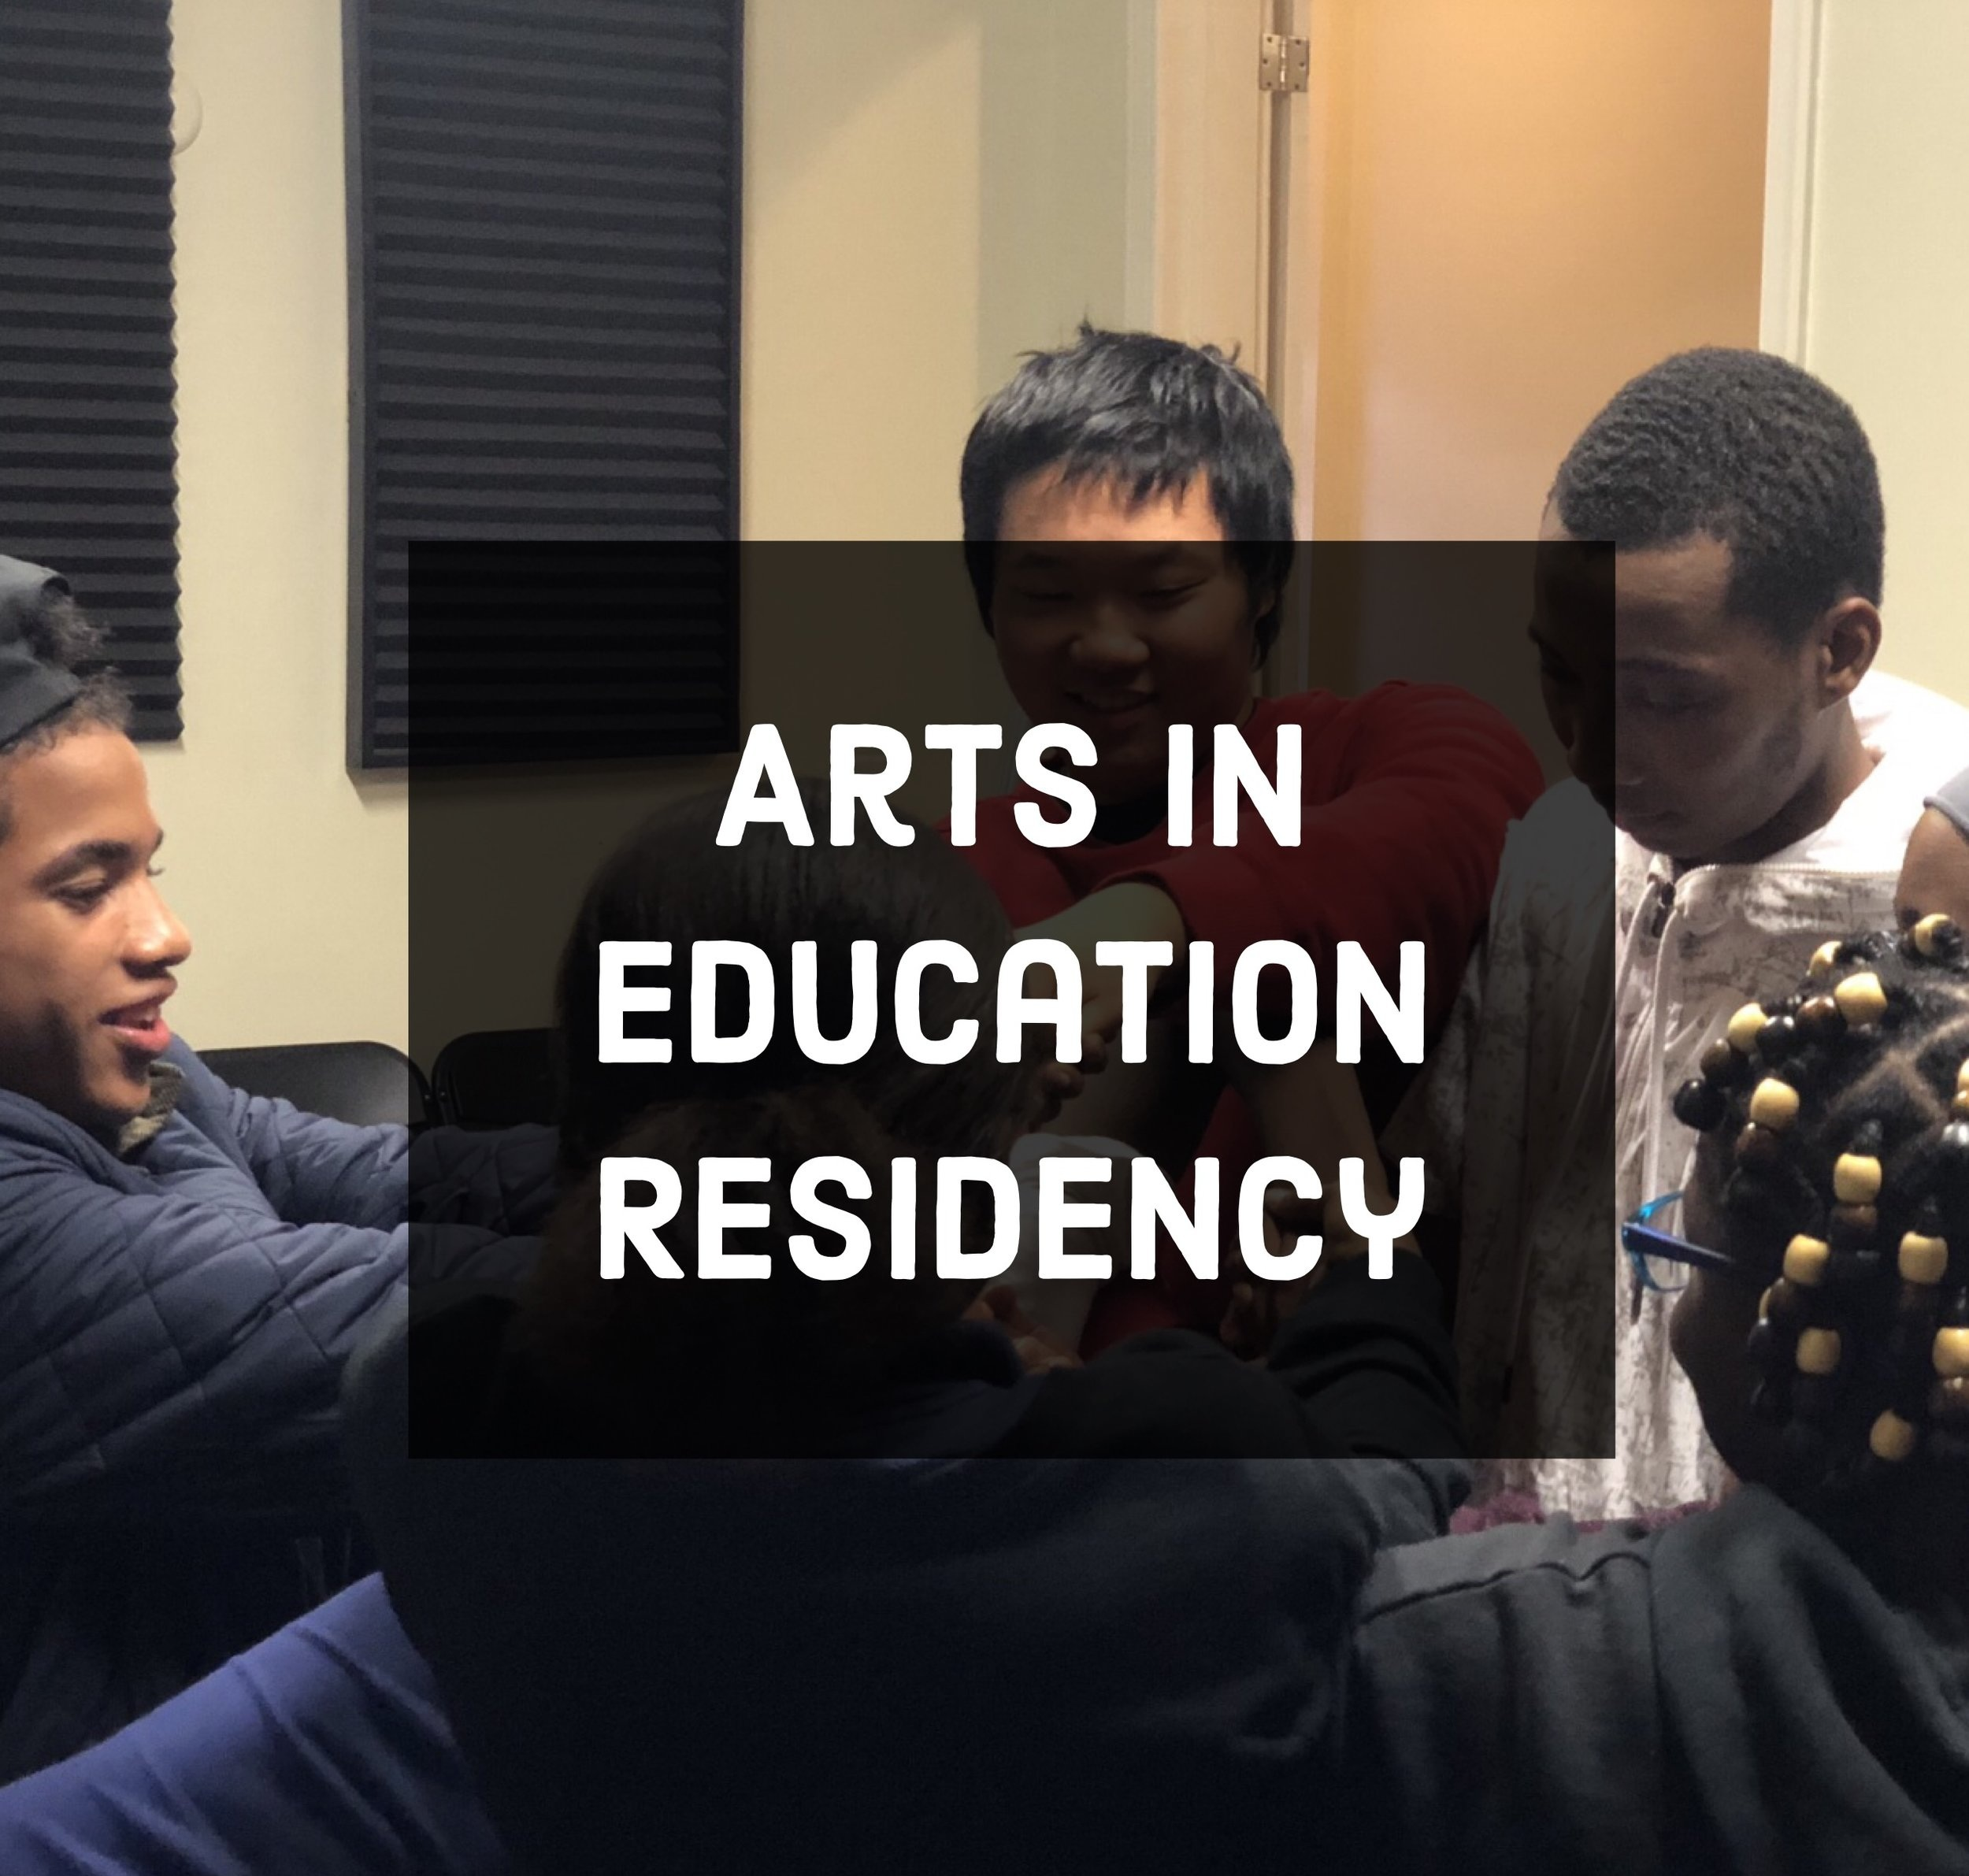 - For the past 3 years, Studio 117 has offered residencies in conjunction with Arts In Education. These classes are typically setup to be weekly classes for 10-24 weeks, and are open to any public or private, education or enrichment center in Pennsylvania. Art's In Education may also be able to partially fund the residency. These residencies are perfect for pushing initiatives such as diversity, ethics, teamwork, professionalism, problem solving, or even helping students in their classes by linking core curriculum with Audio Production/Music Education.Many students prefer to learn and actually perform better in classes involving music and arts. Traditionally, left brained thinkers are more organized and systematic while right brained thinkers are more creative and intuitive. Many current school programs exercise and test their students' abilities to solve problems in an organized and systematic manor but completely ignore the creative processes that certain individuals may use to understand these problems. This is why many people feel that they don't use certain methods that they learned in school to solve problems in real-life scenarios. We feel that an organized method is essential to solving many problems, but many people will need to get creative and intuitive in their workplace or in everyday life to succeed. For many, a link between creativity and traditional core curriculum classes are a must.Currently, our residencies are limited to evenings and weekends. If your school or organization is interested in developing a residency with Studio 117, please use the email button at the bottom of the page to schedule a meeting.$250/class per organization (10 Class Min. 15 student max) Scholarships may be available)